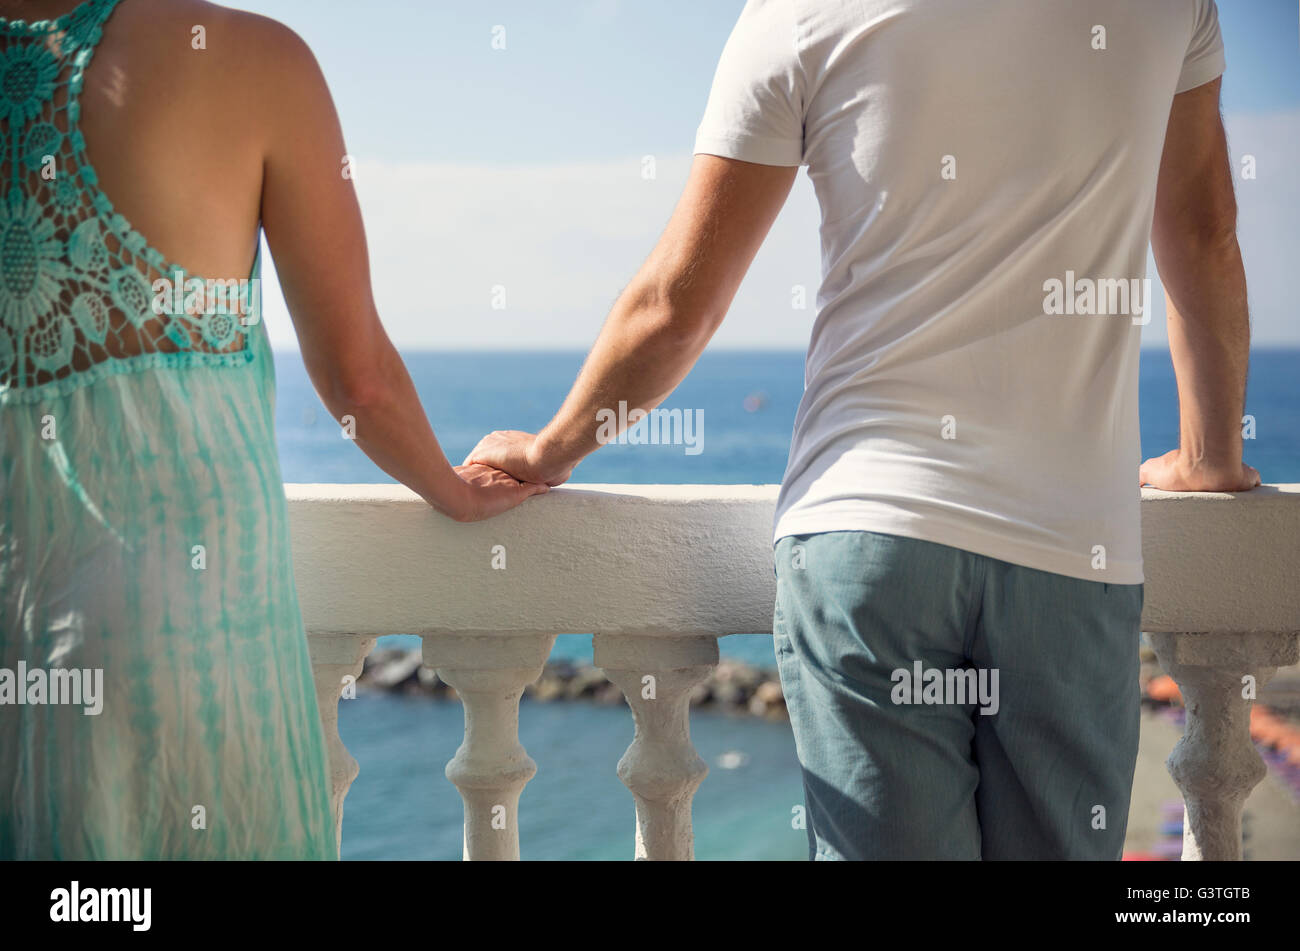 Italy, Cinque Terra, Monterosso, Couple standing on balcony with sea view and holding hands - Stock Image